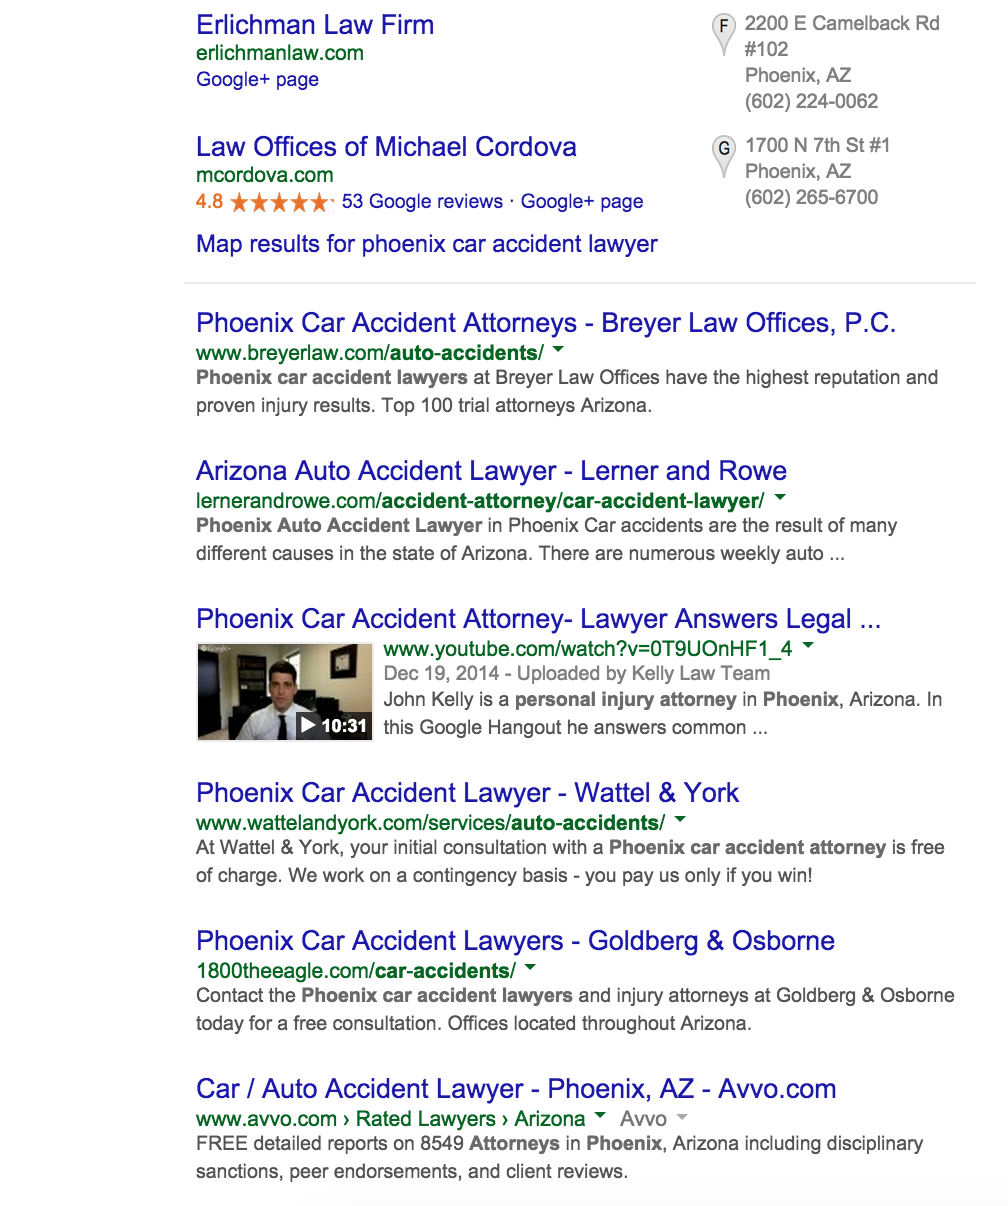 Phoenix Car Accident Lawyer Google Search Results Over Time  Wojdylo Social Media